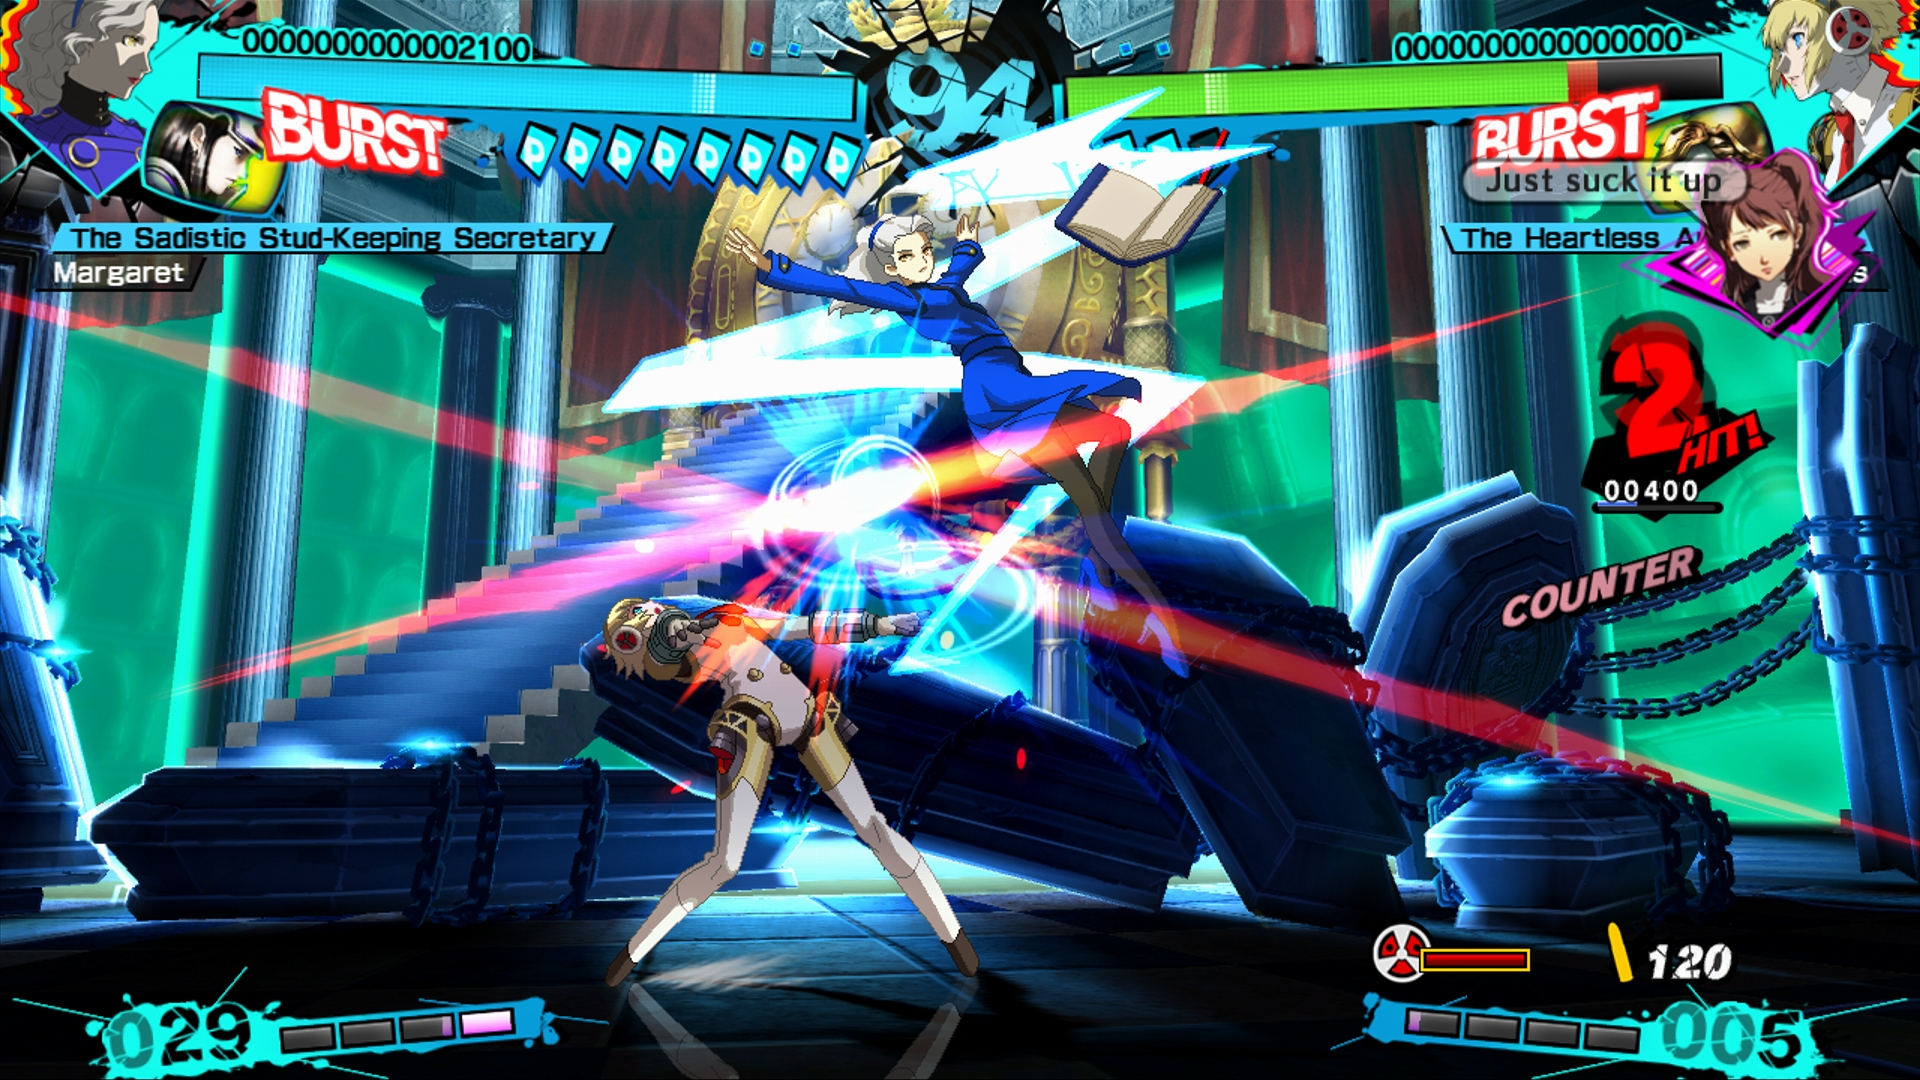 Persona 4 Arena Ultimax 2110